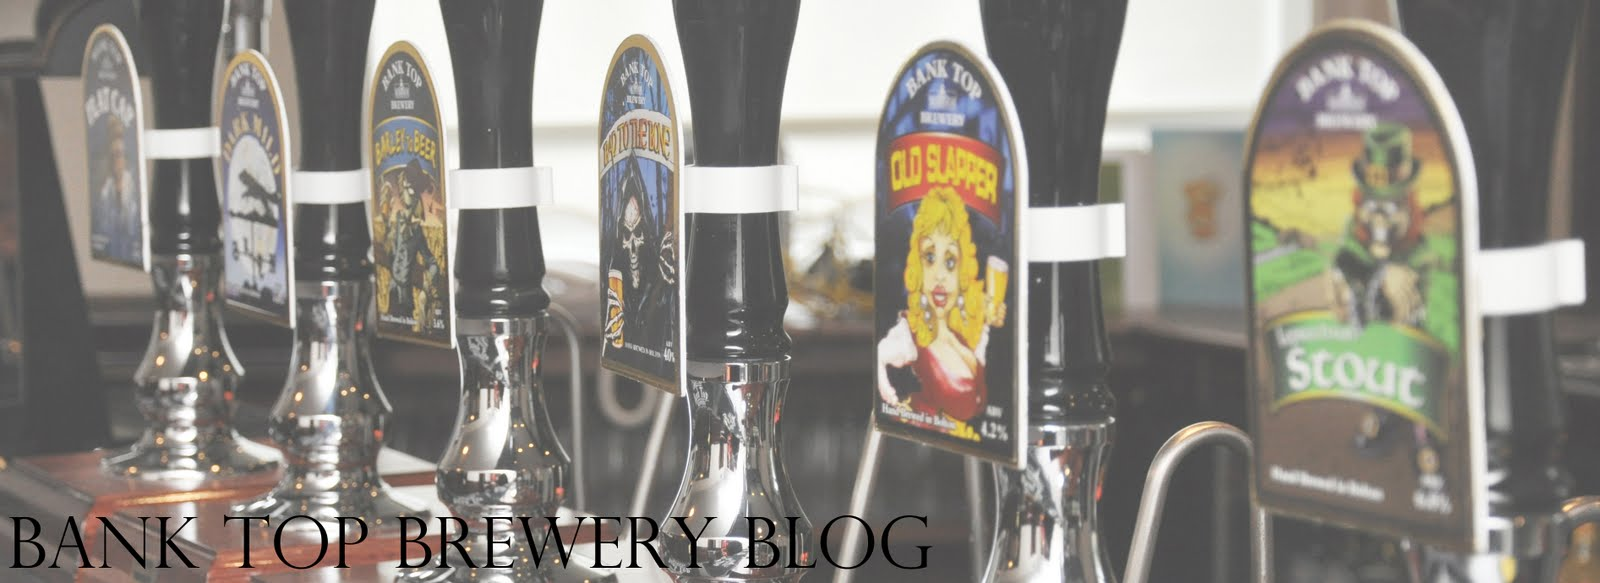 Bank Top Brewery Blog